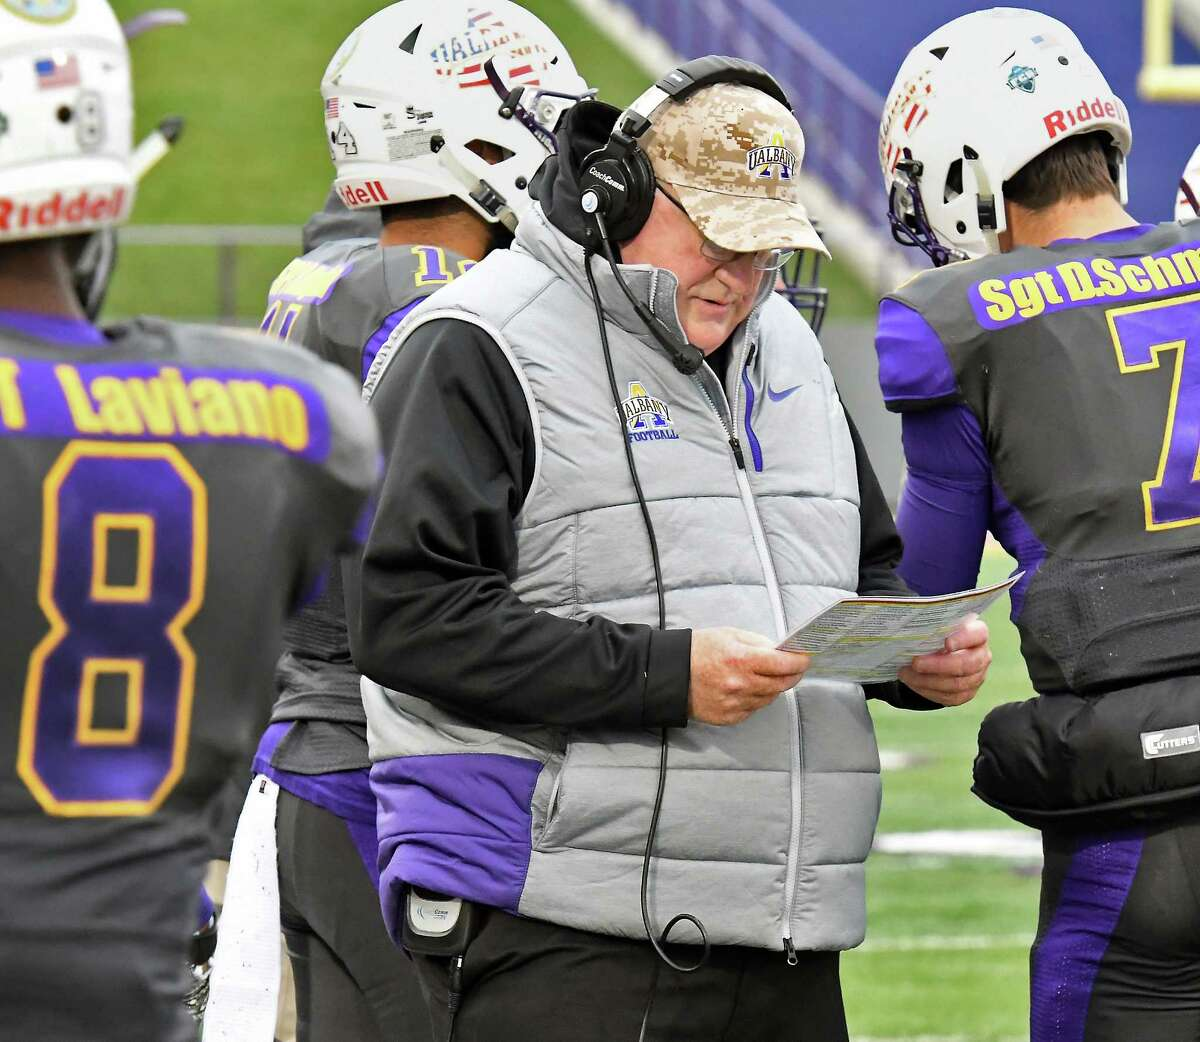 UAlbany head coach Greg Gattuso, center, on the sidelines during their Colonial Athletic Association game against New Hampshire Saturday Nov. 18, 2017 in Albany, NY. (John Carl D'Annibale / Times Union)